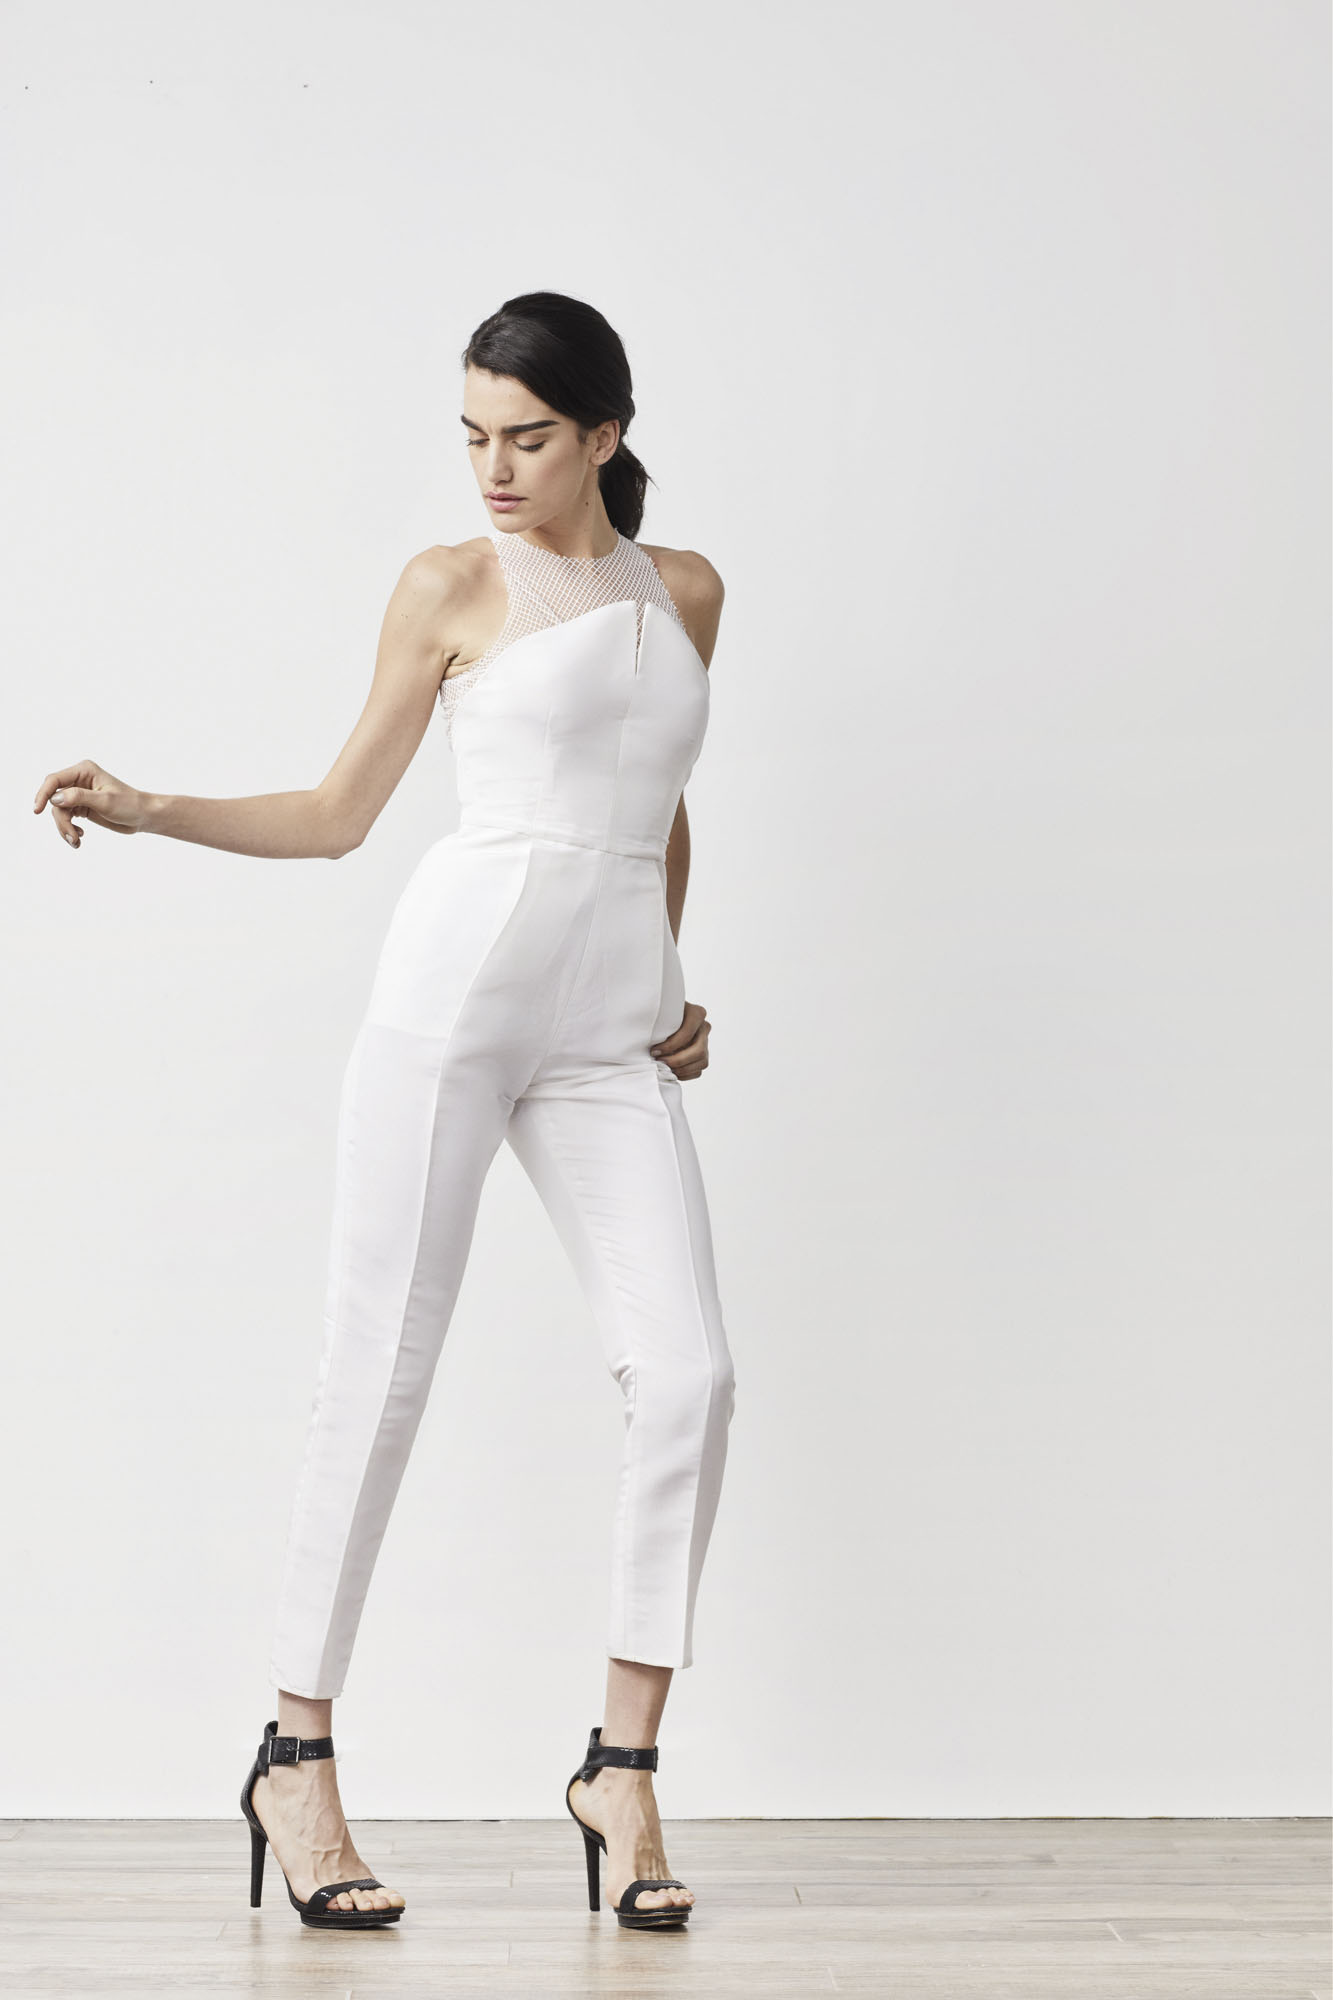 The Italian Neoprene Sonia jumpsuit featuring luxe Italian lace and an angled bodice is the perfect option for modern brides wanting an alternative look for their wedding day .